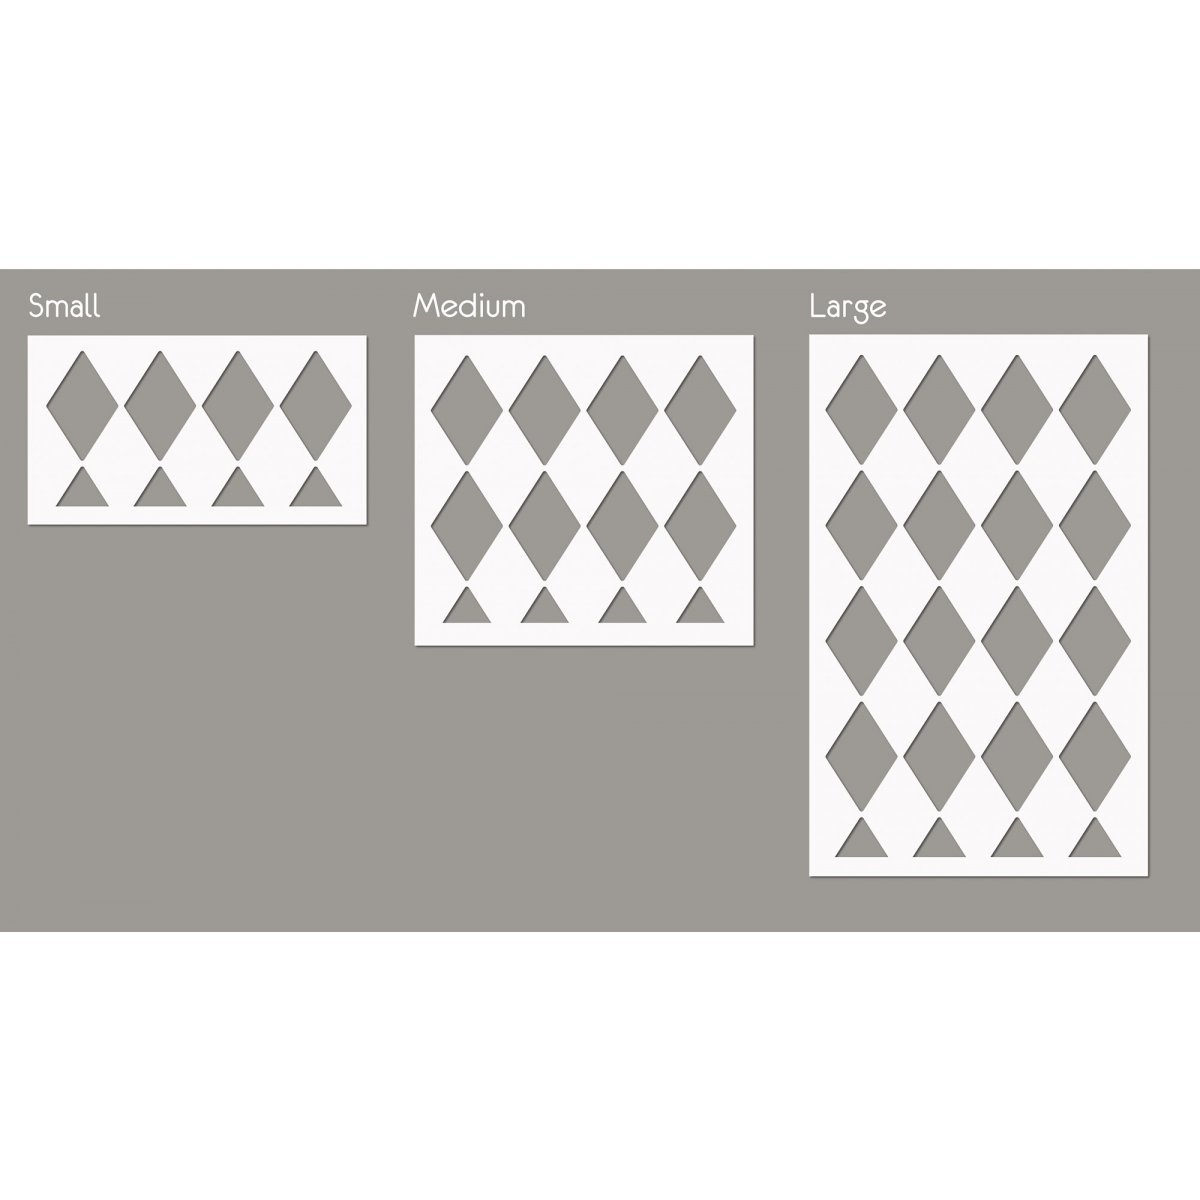 HARLEQUIN PATTERN / Reusable Allover Large Wall Stencils for Painting